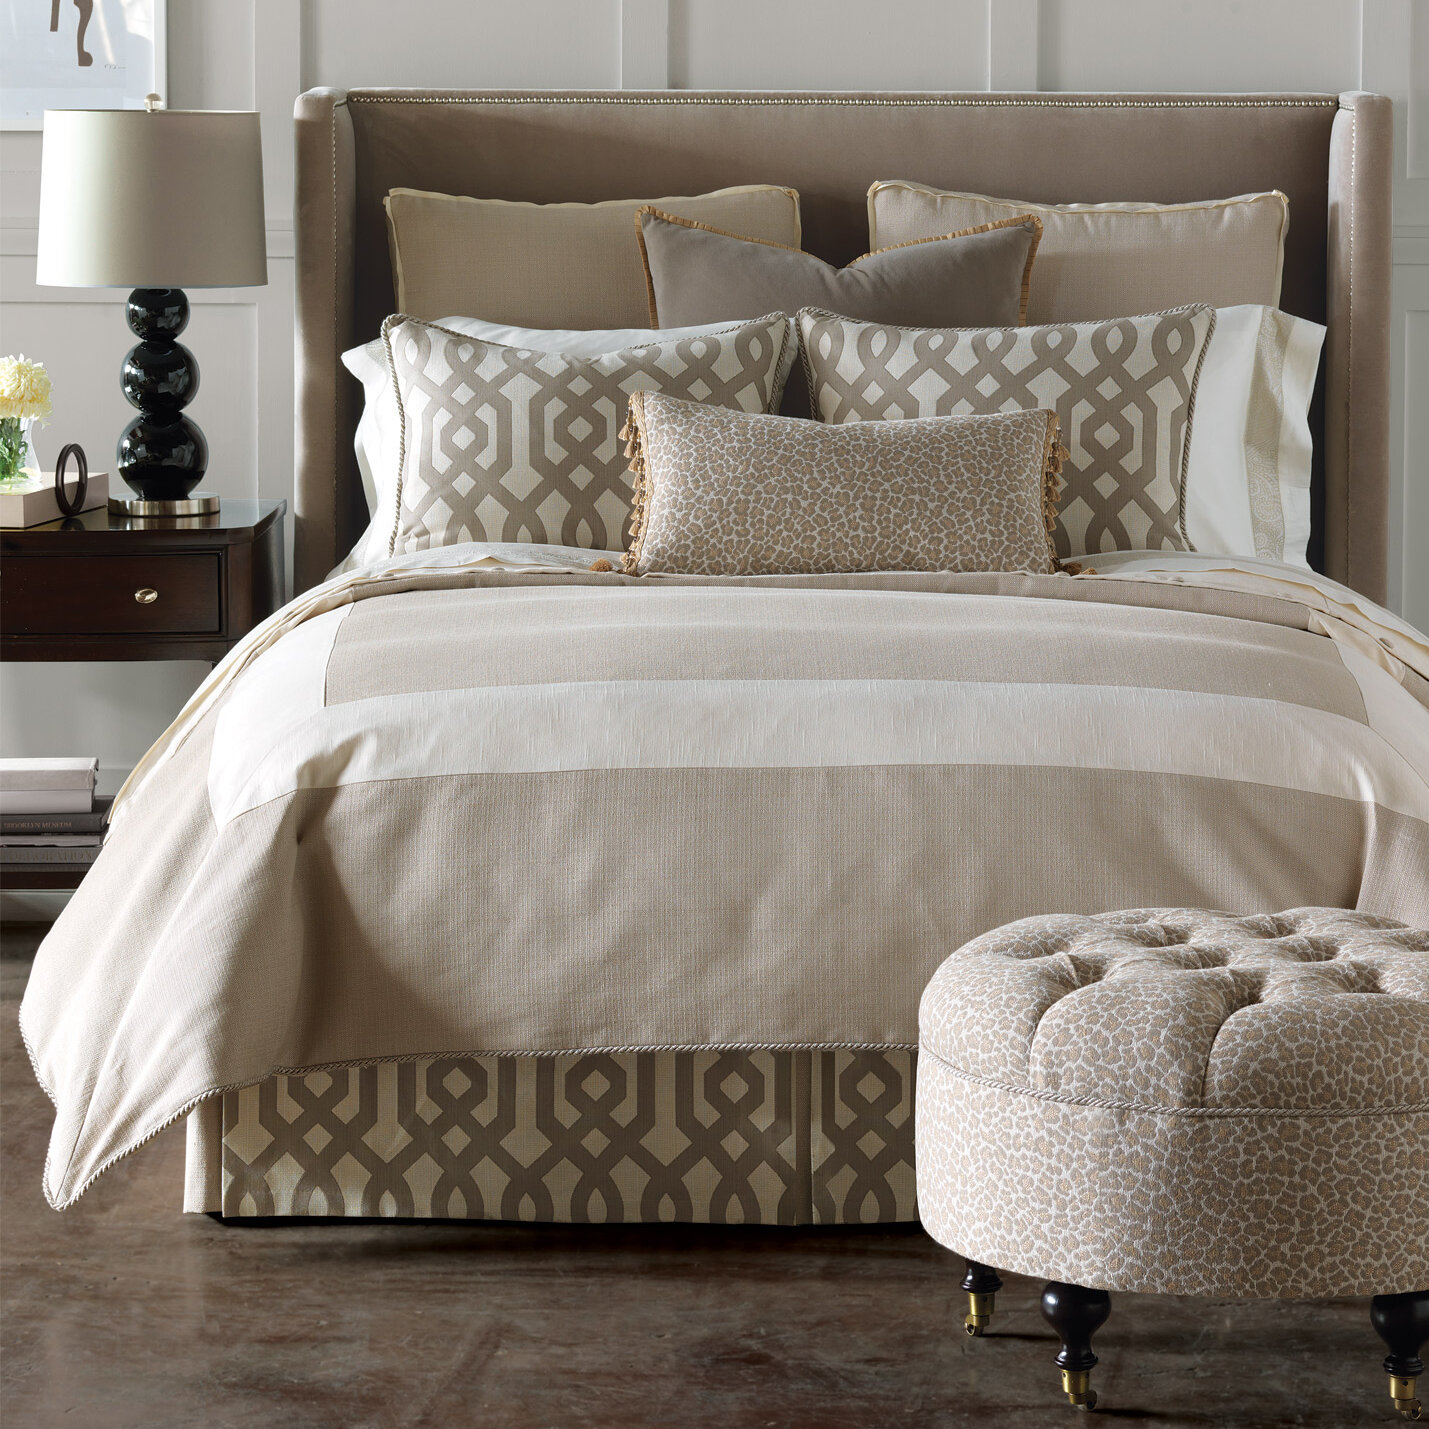 Eastern Accents Rayland Cotton Blend Comforter Set Collection Reviews Wayfair